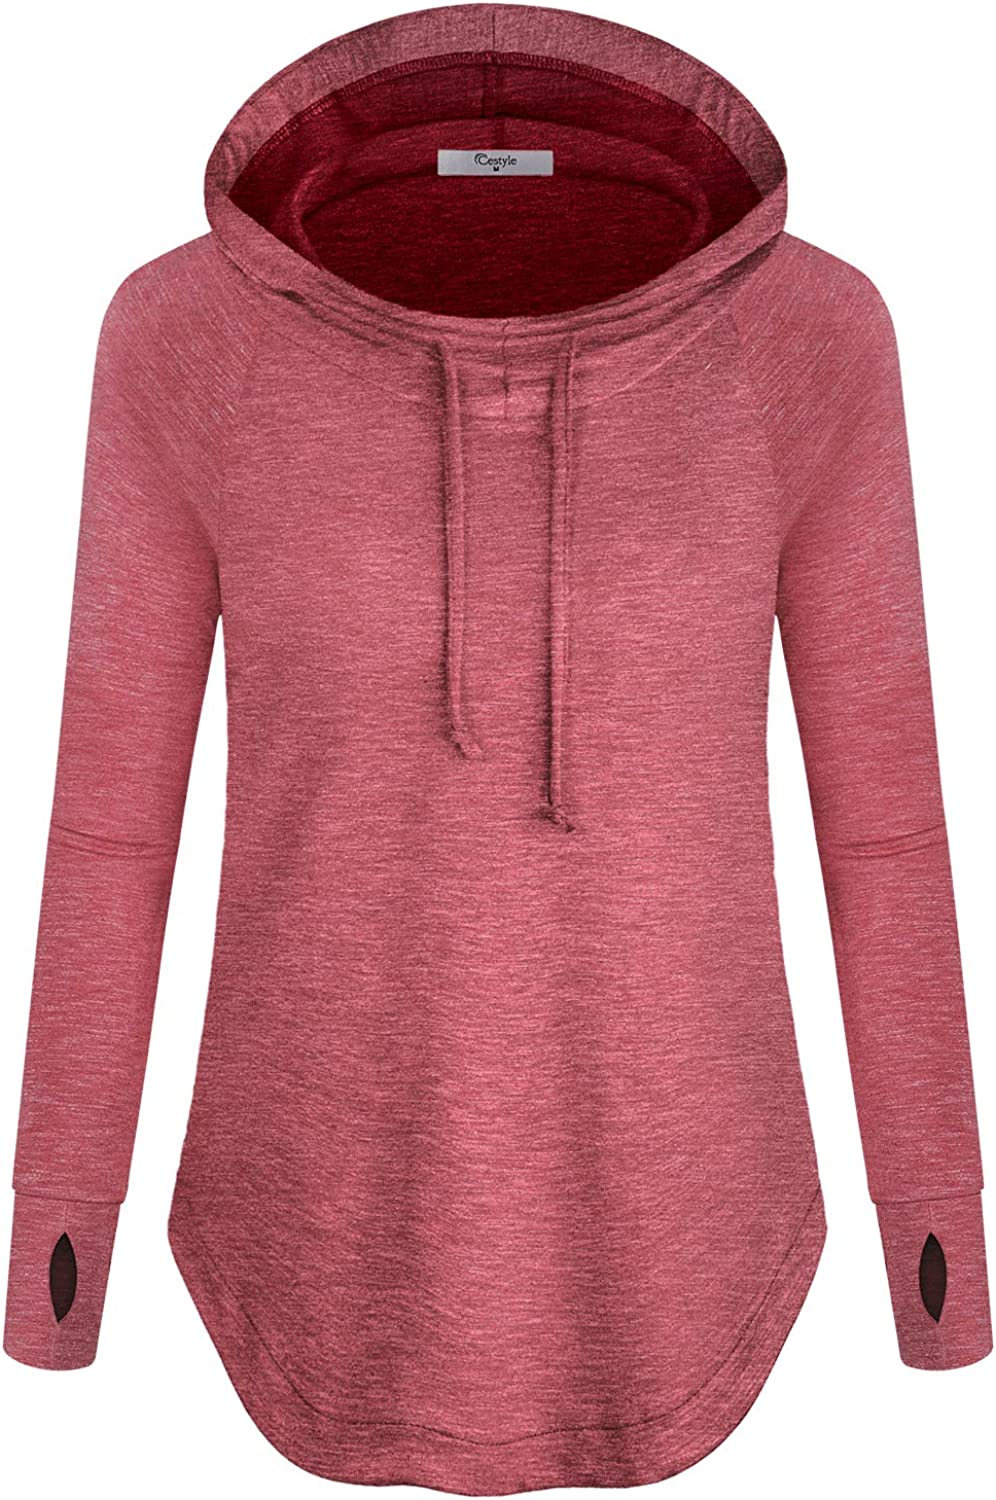 Cestyle Womens Pullover Long Max 66% OFF Sleeve Workout 55% OFF Yoga Hoodie wi Sport